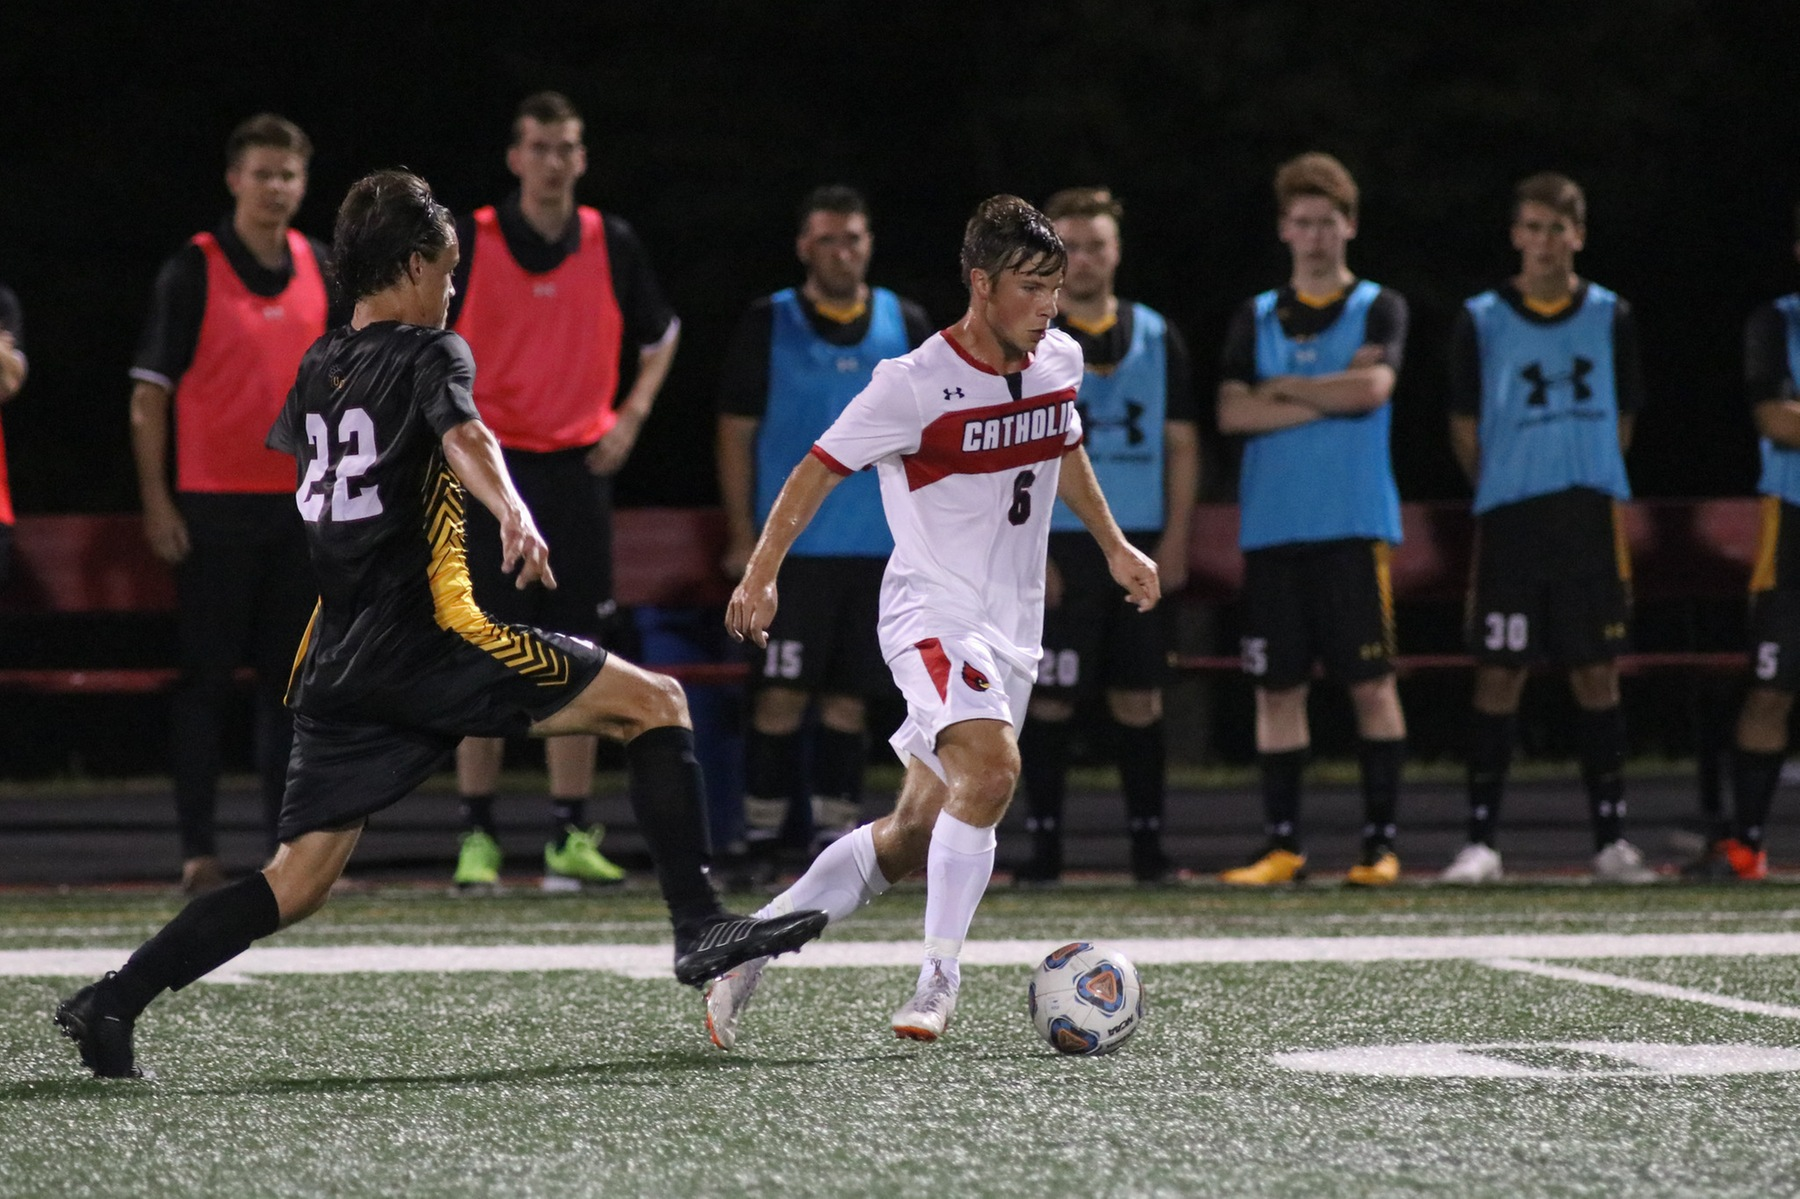 Meszaros Nabs First Goal in 2-1 Loss to Buffalo State